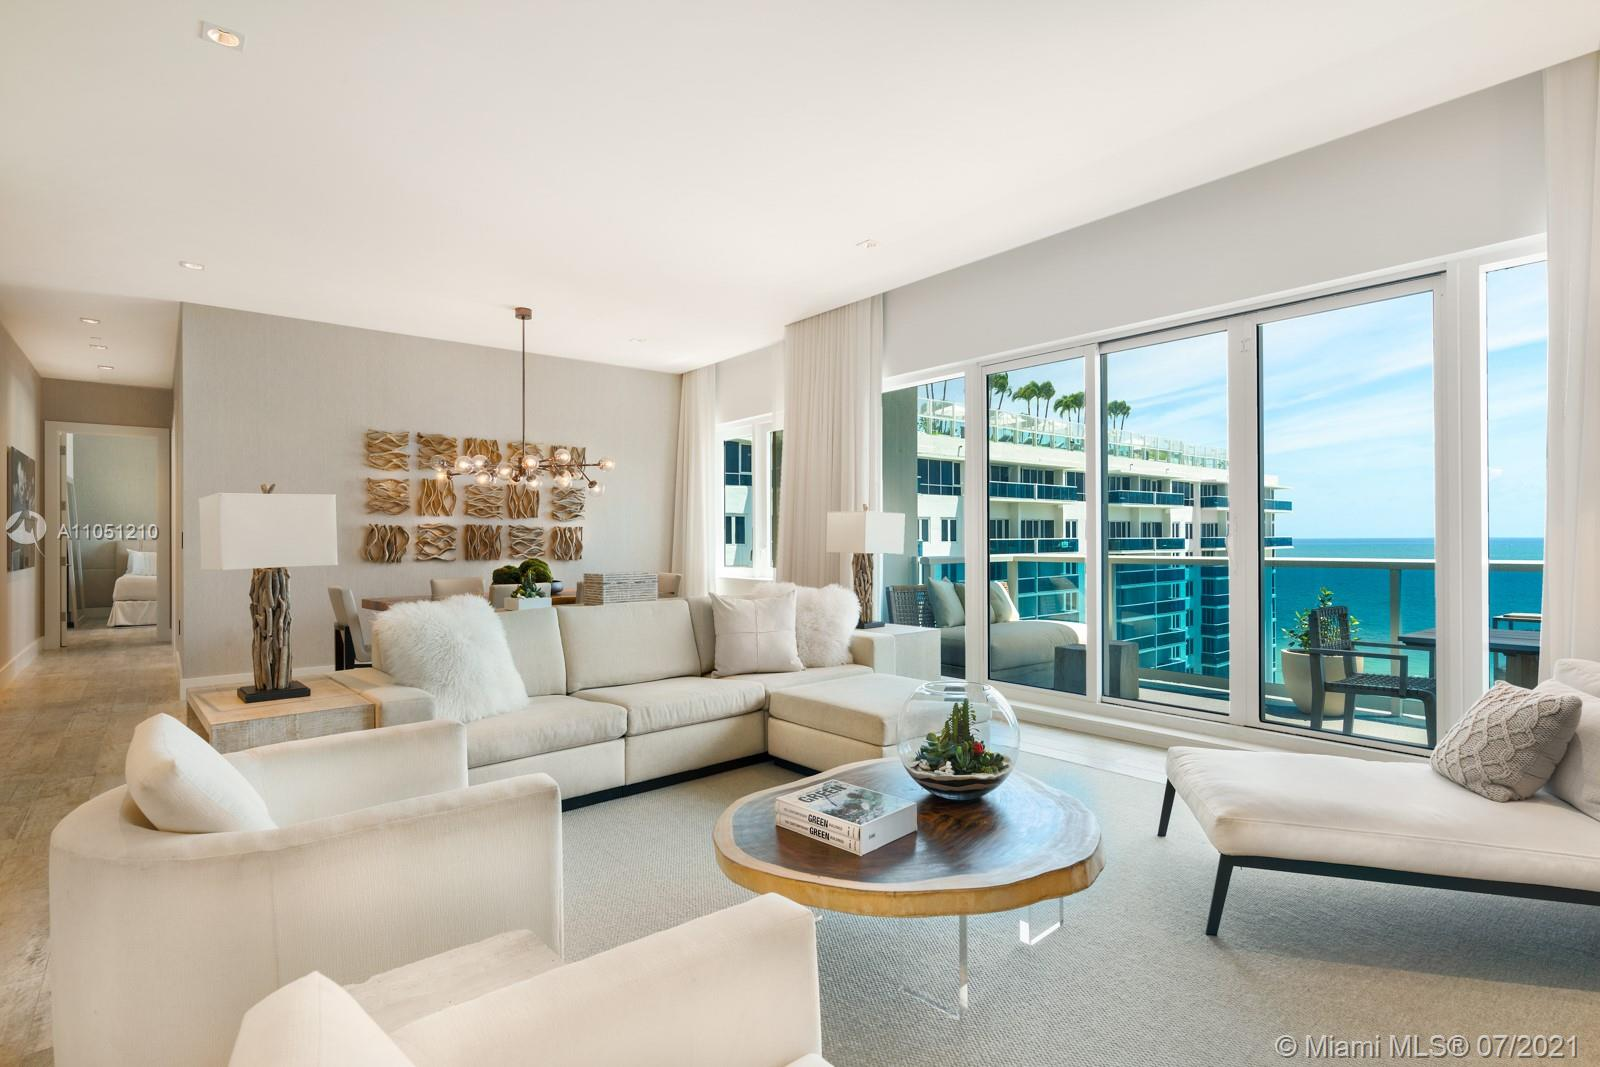 Direct ocean view trophy Penthouse located at 1 Hotel & Homes, South Beach! Featuring lavish home elements, 12 foot ceilings and delivered fully furnished by Brazilian designer Debora Aguiar.Bring the outside in, floor to ceiling sliding doors make this spacious 5 bed + maids quarters, 4.5 baths w/ 2,792 sqft. seem endless.Experience hotel living with access to all services including housekeeping, valet, concierge, in-room dining, 14,000 sqft gym, Bamford Haybarn SPA, Restaurants, Rooftop pool & more!